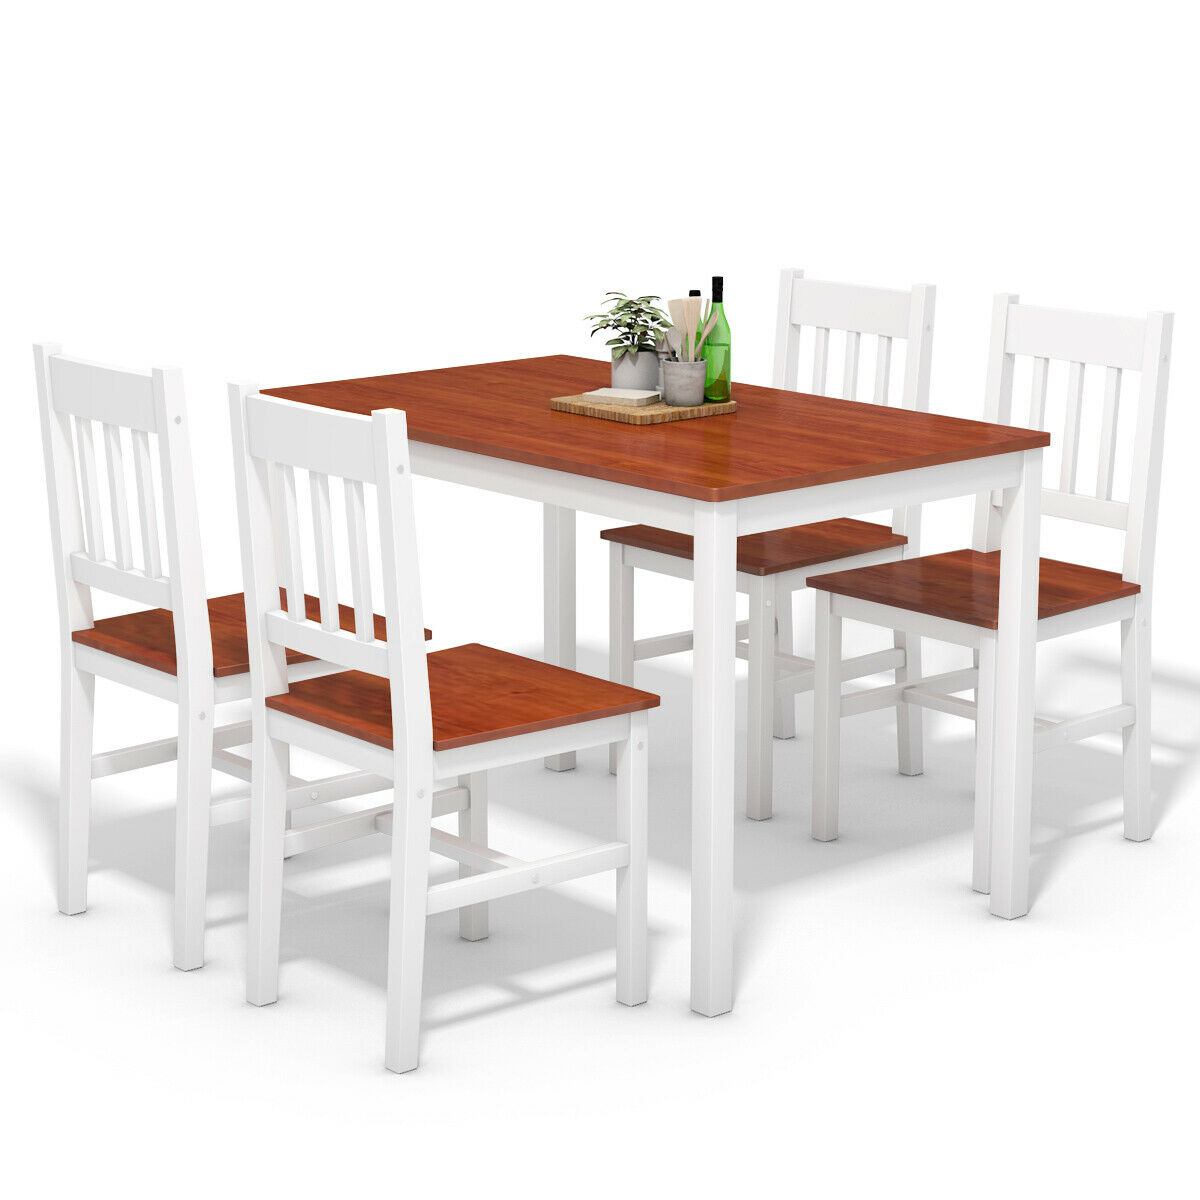 Kitchen Chairs Wood Gymax 5 Piece Dining Table Set 4 Chairs Solid Wood Home Kitchen Breakfast Furniture